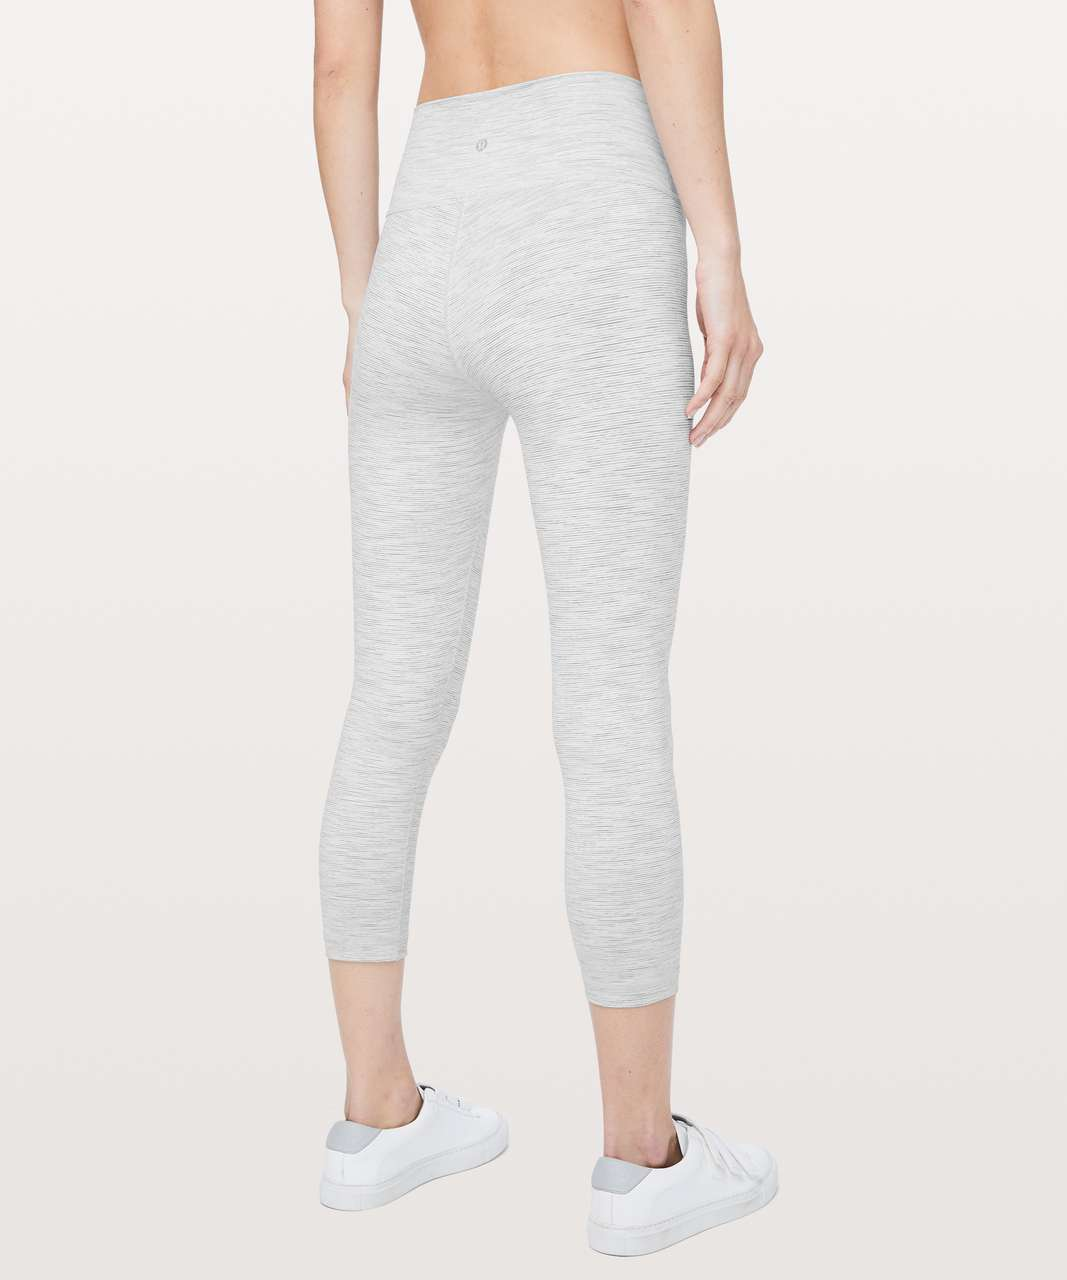 "Lululemon Wunder Under Crop (High-Rise) *Luxtreme 21"" - Wee Are From Space Nimbus Battleship"